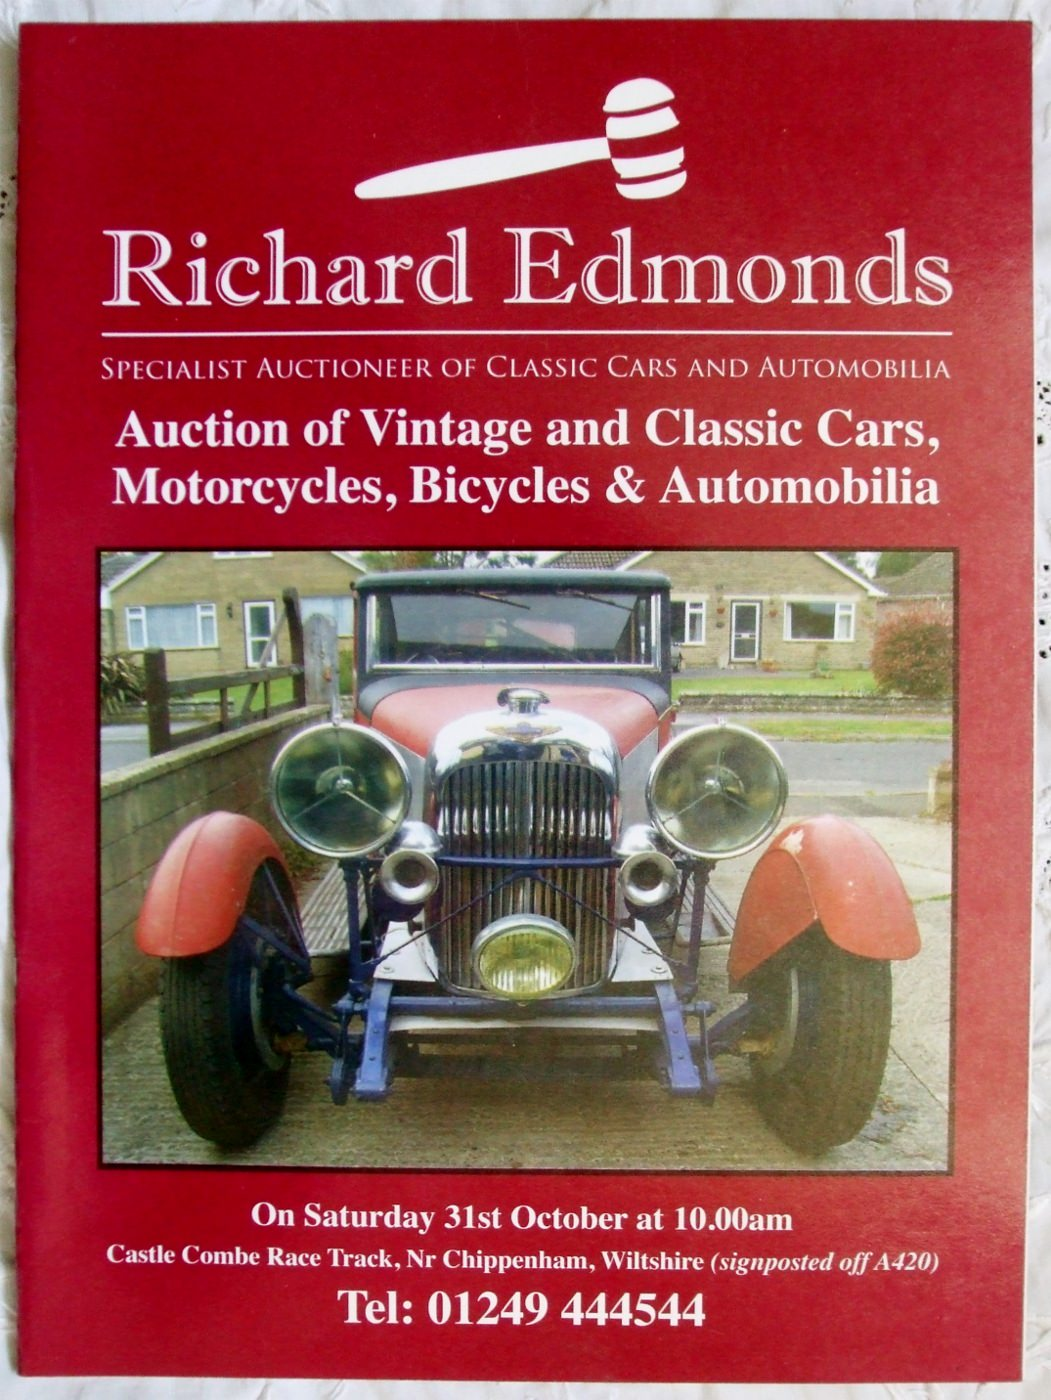 Richard Edmonds Vintage Classic Cars Motorcycles Bicycles Automobilia 31 October 2009